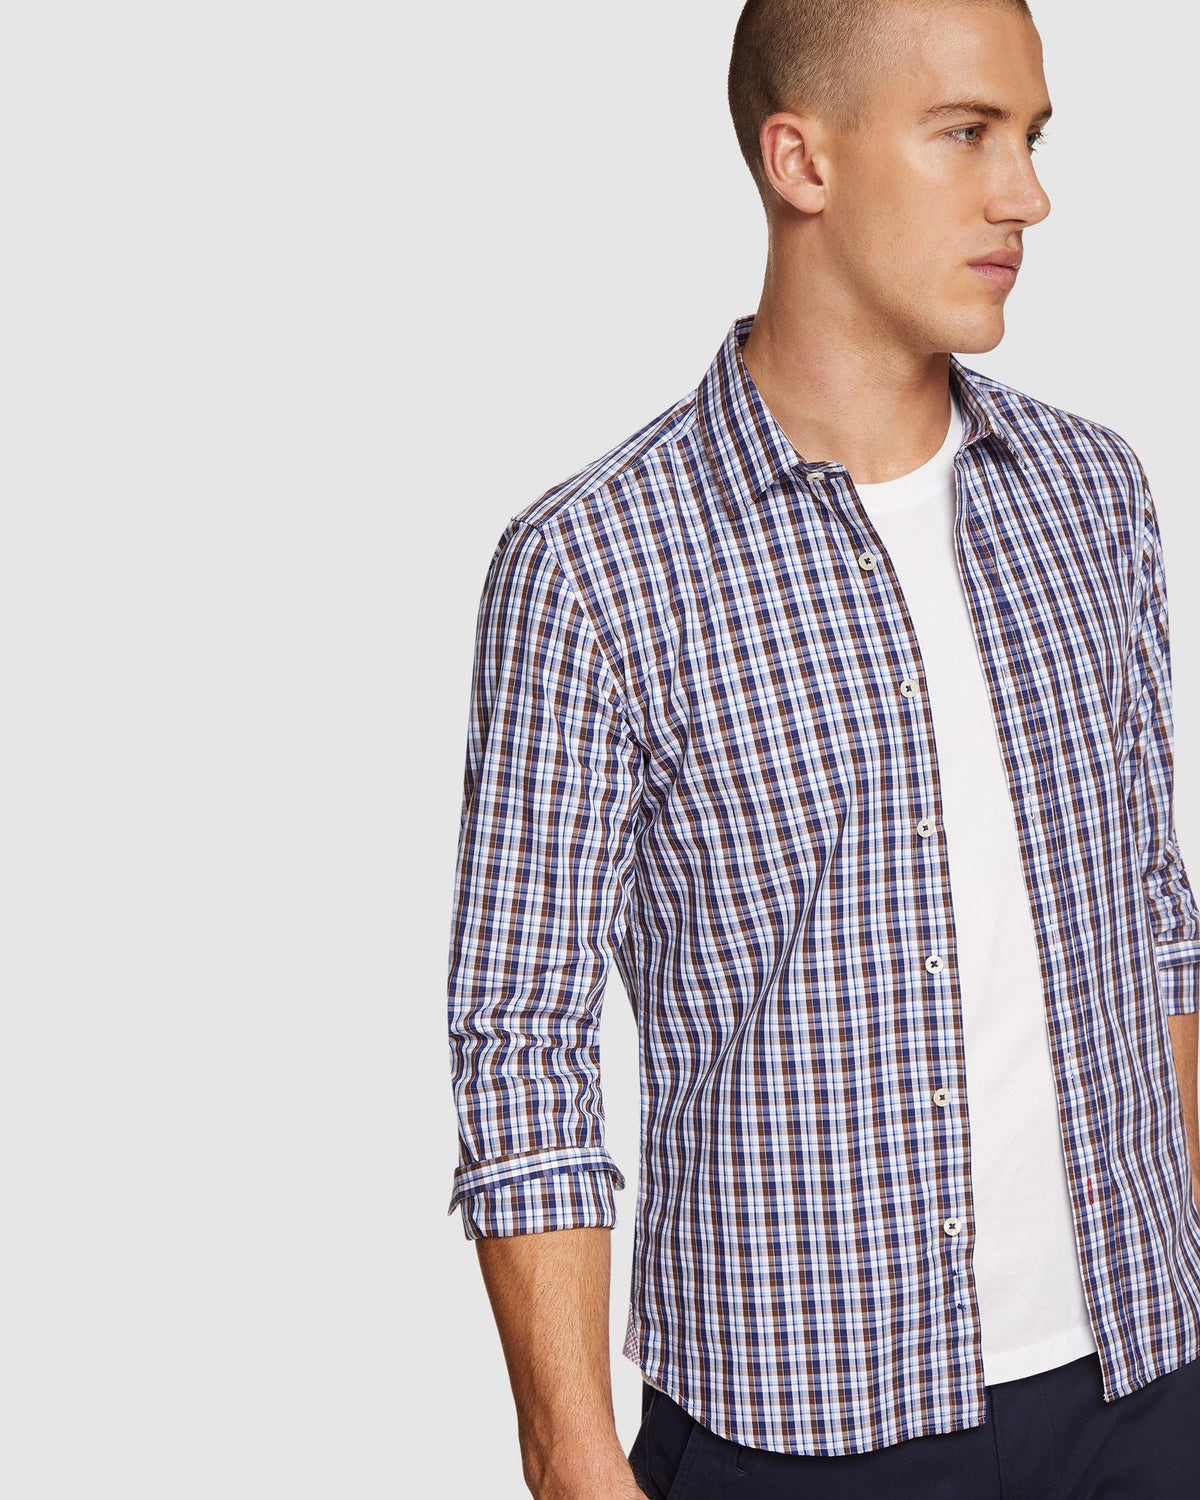 KENTON CHECKED SHIRT BROWN/NAVY